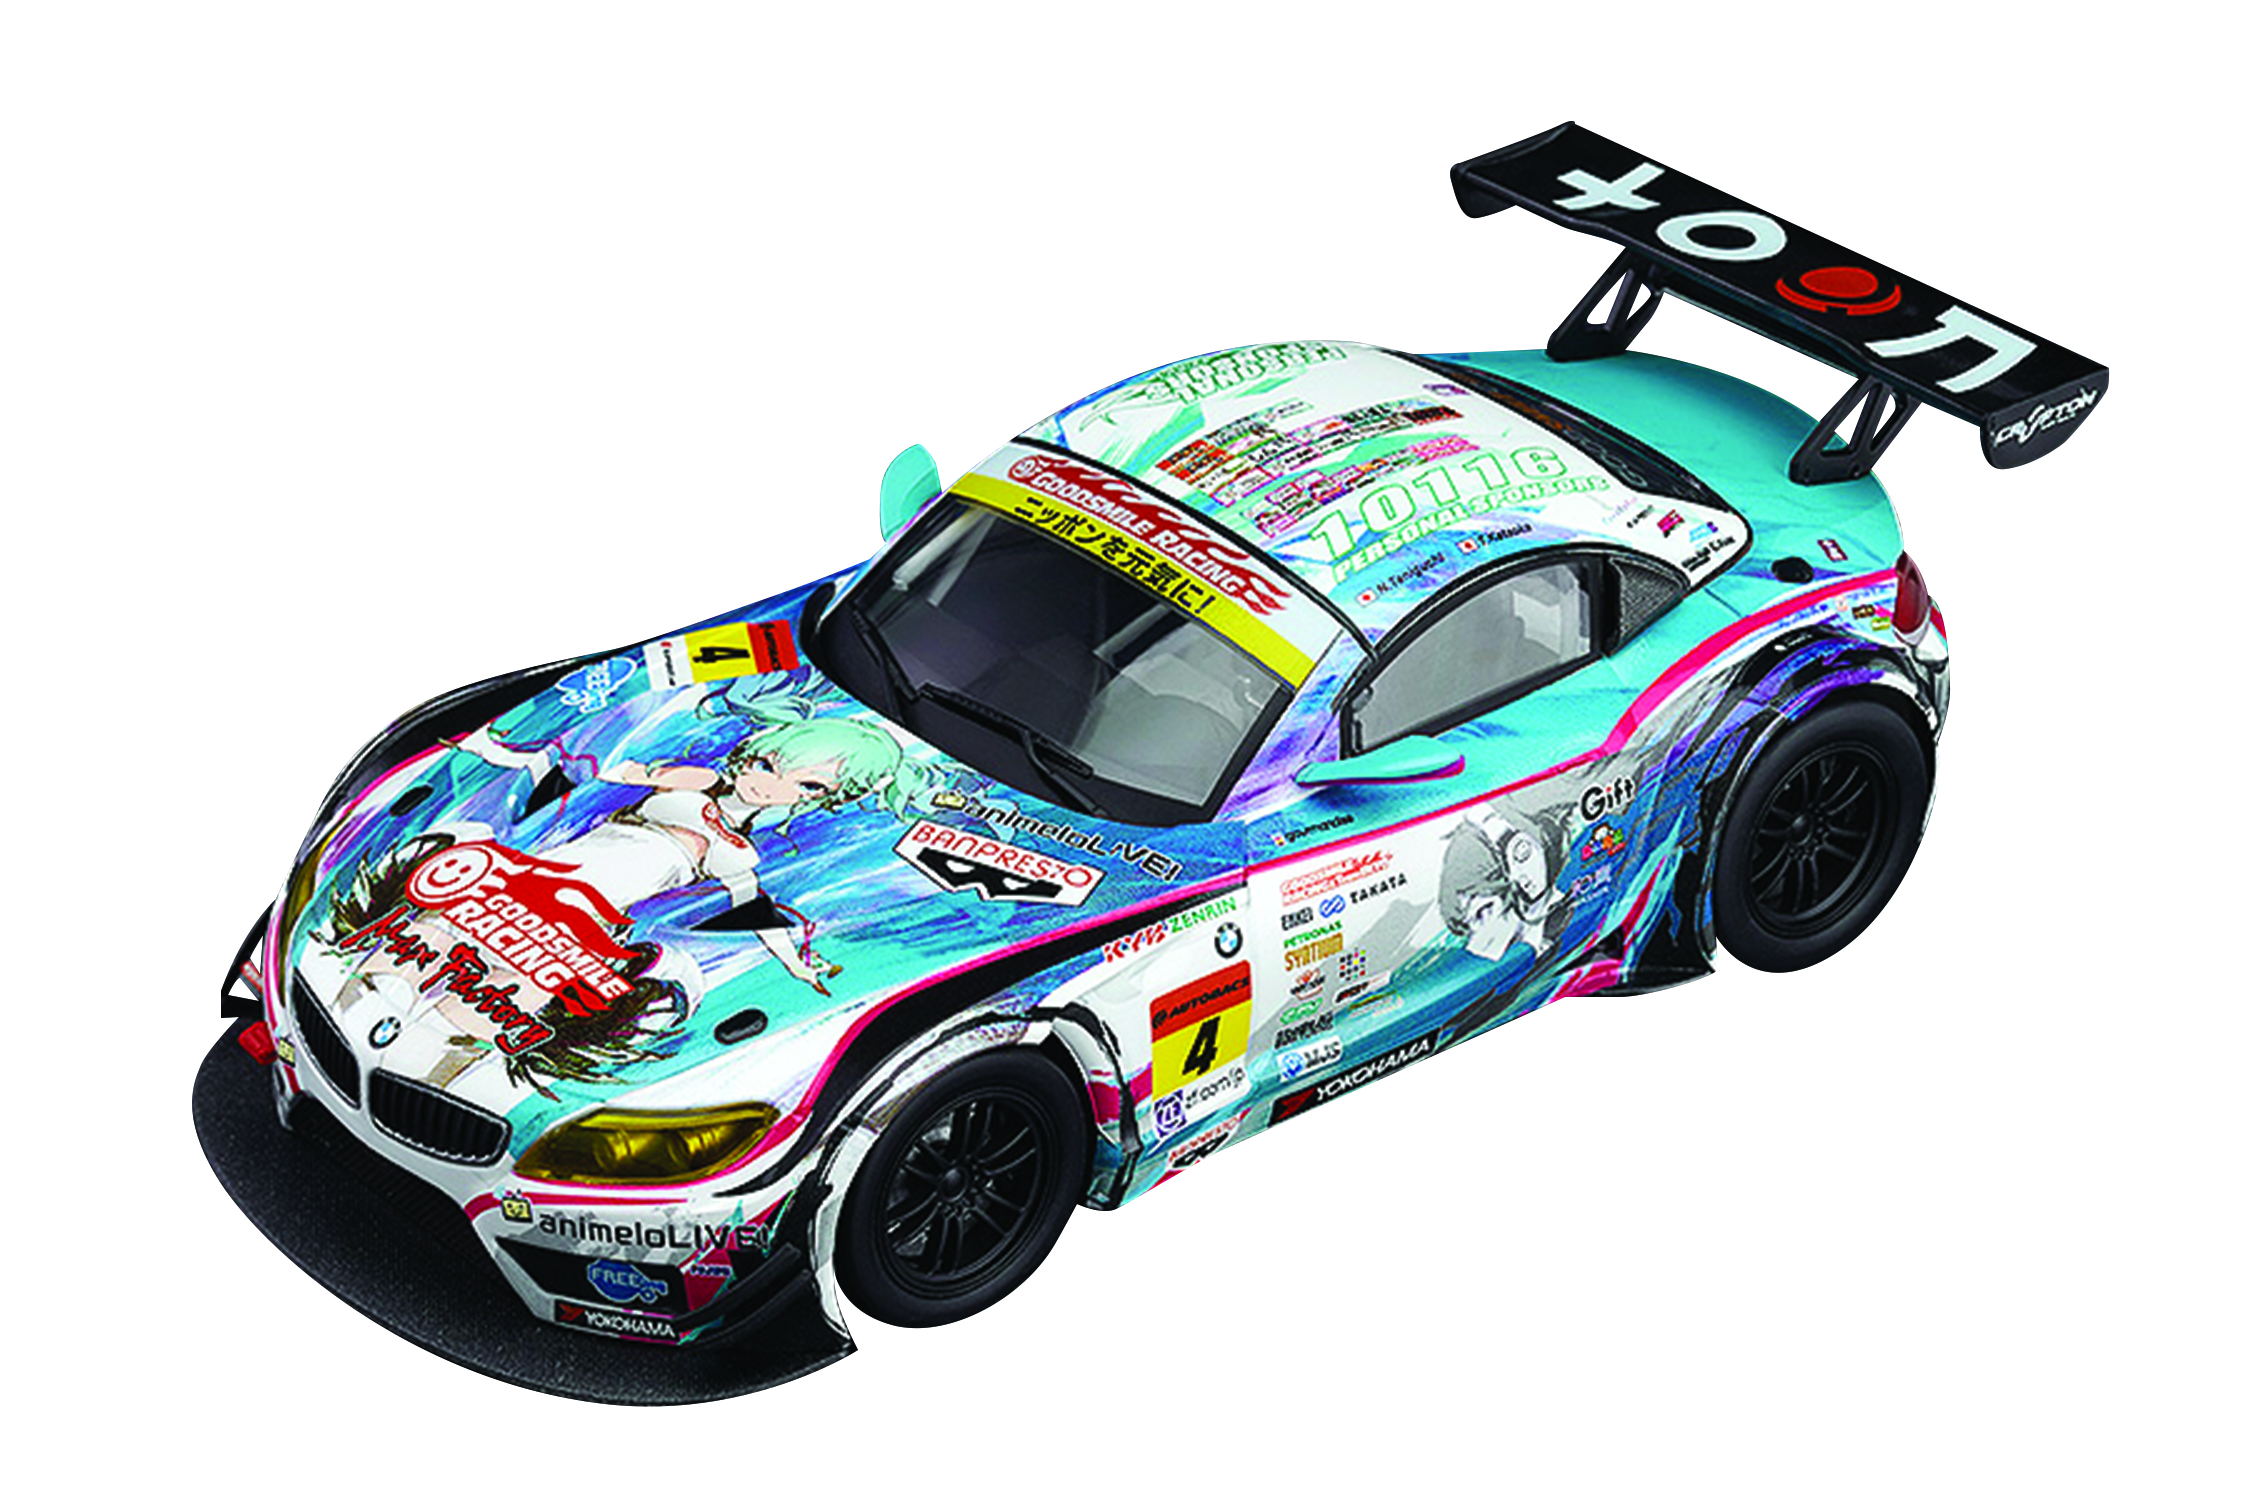 RACING MIKU BMW 2014 VEHICLE SERIES CHAMPION VER